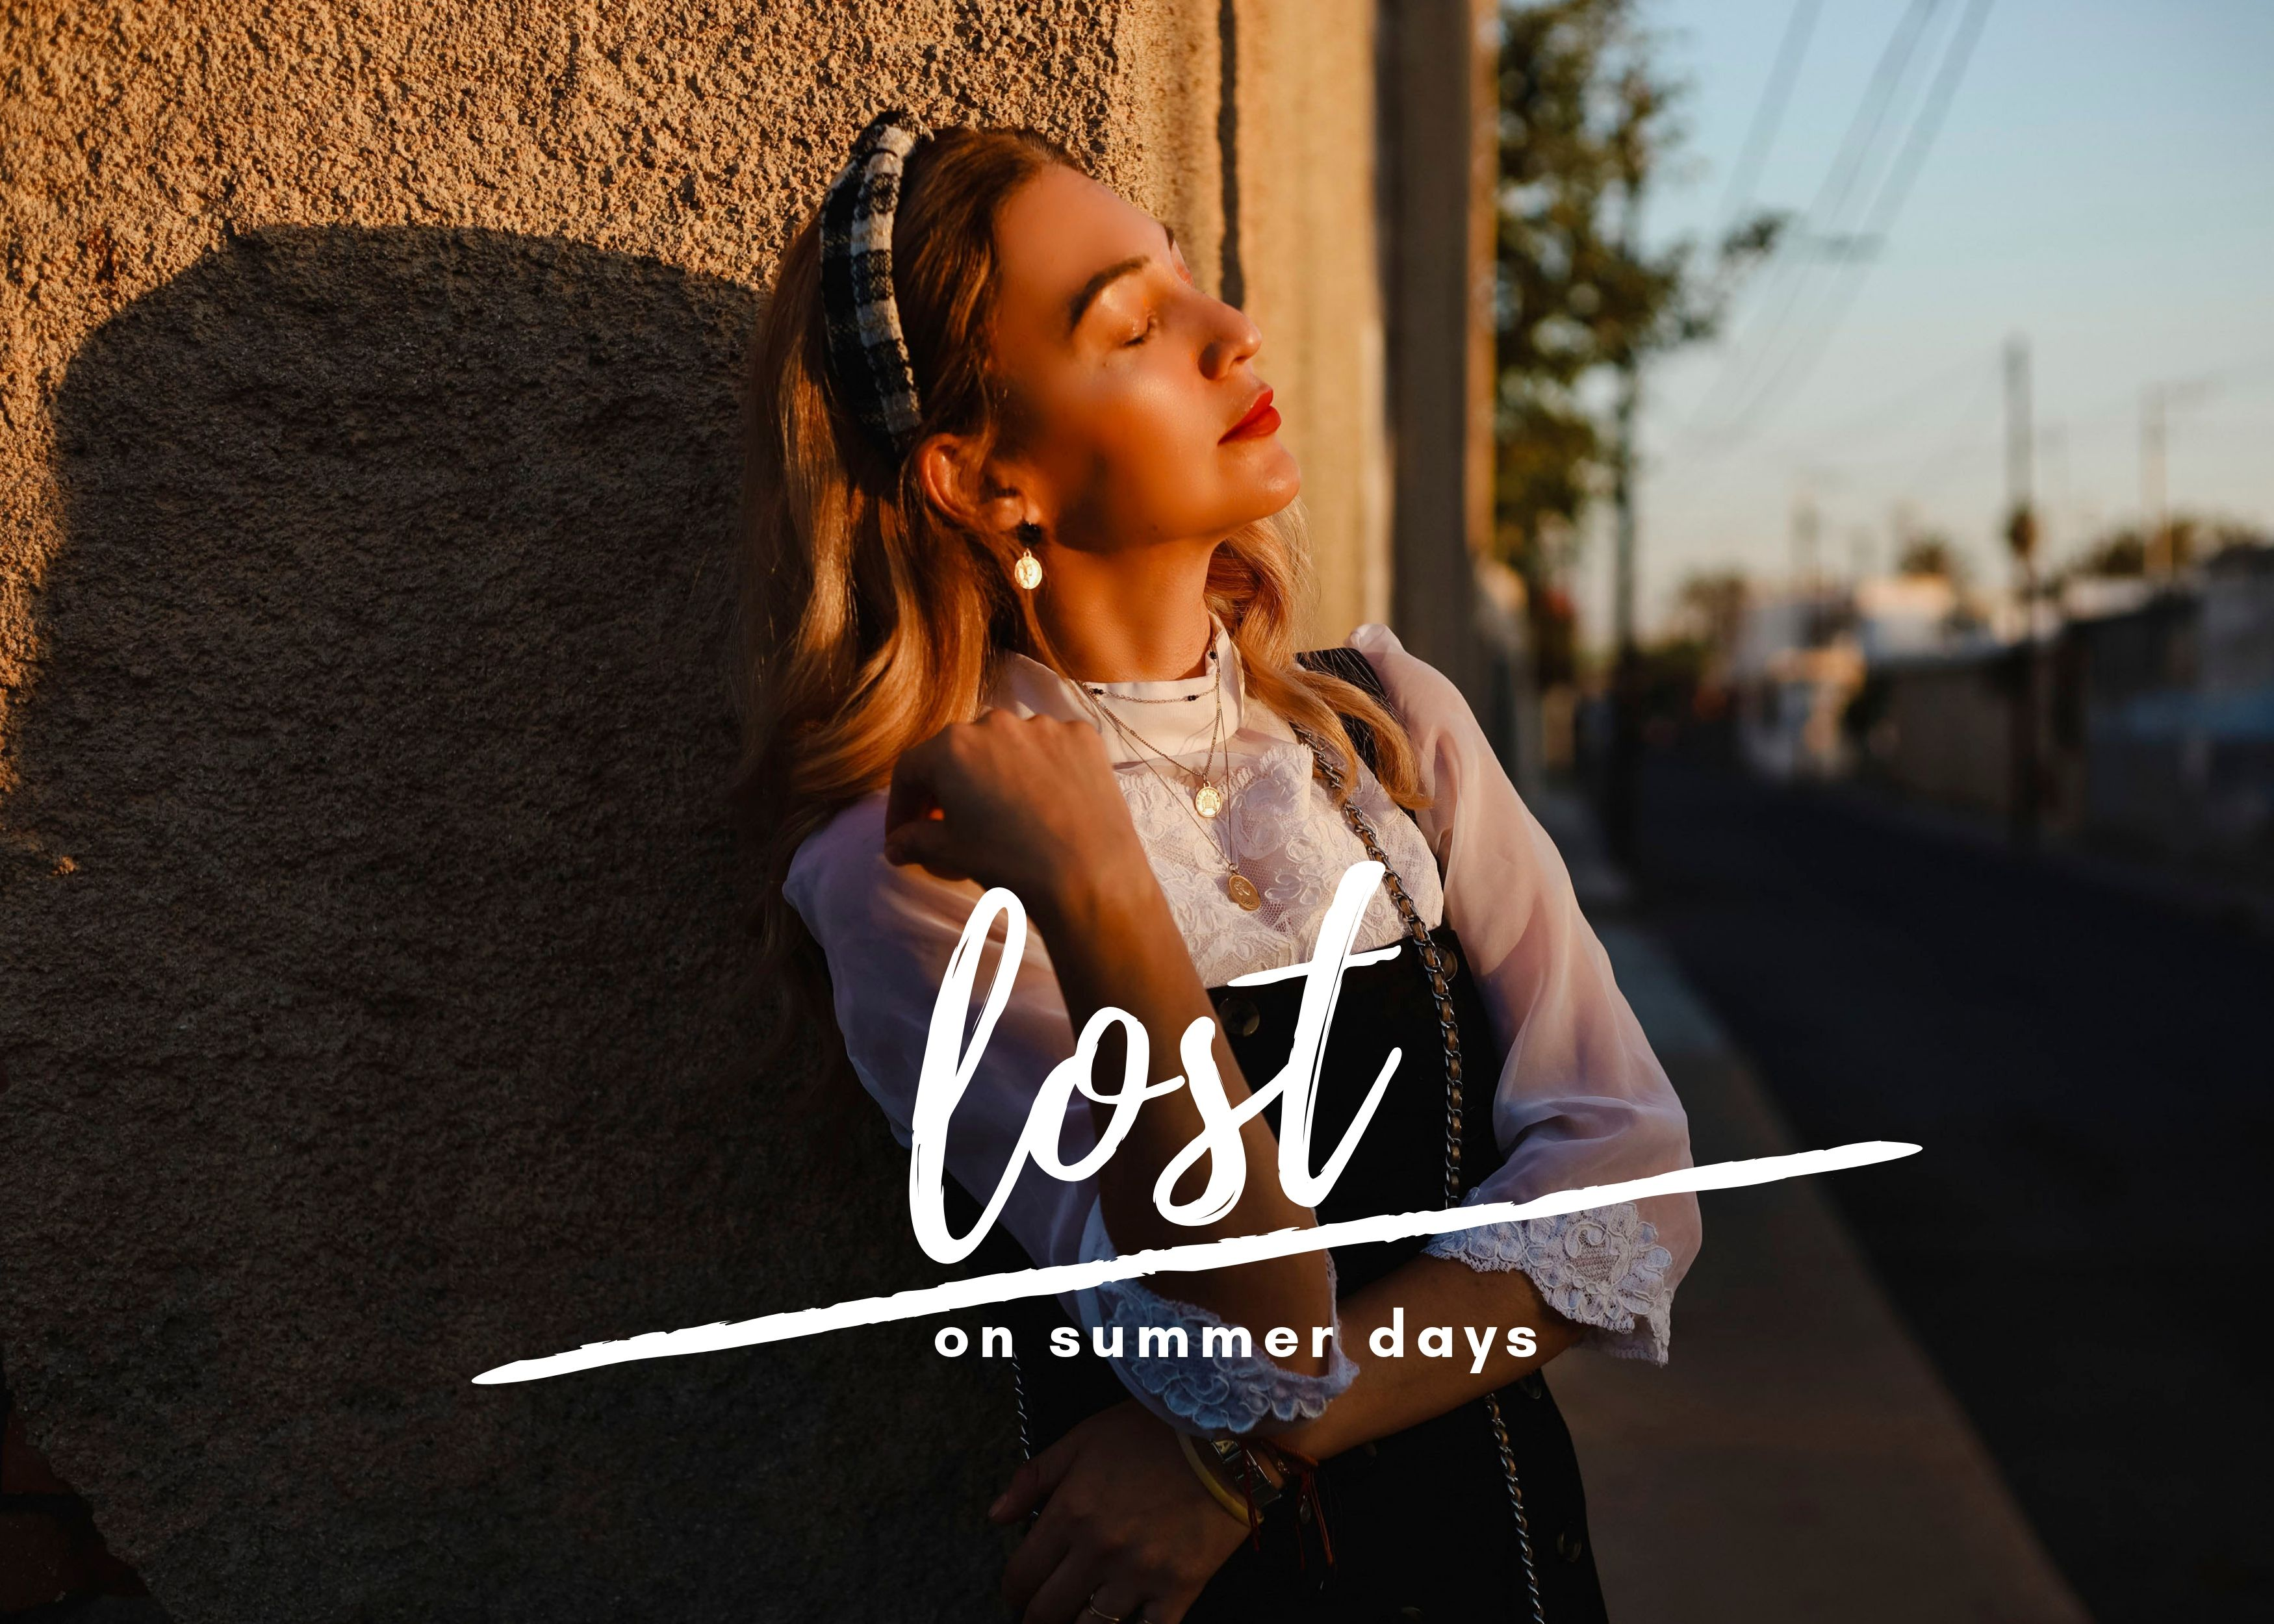 Lost on summer days